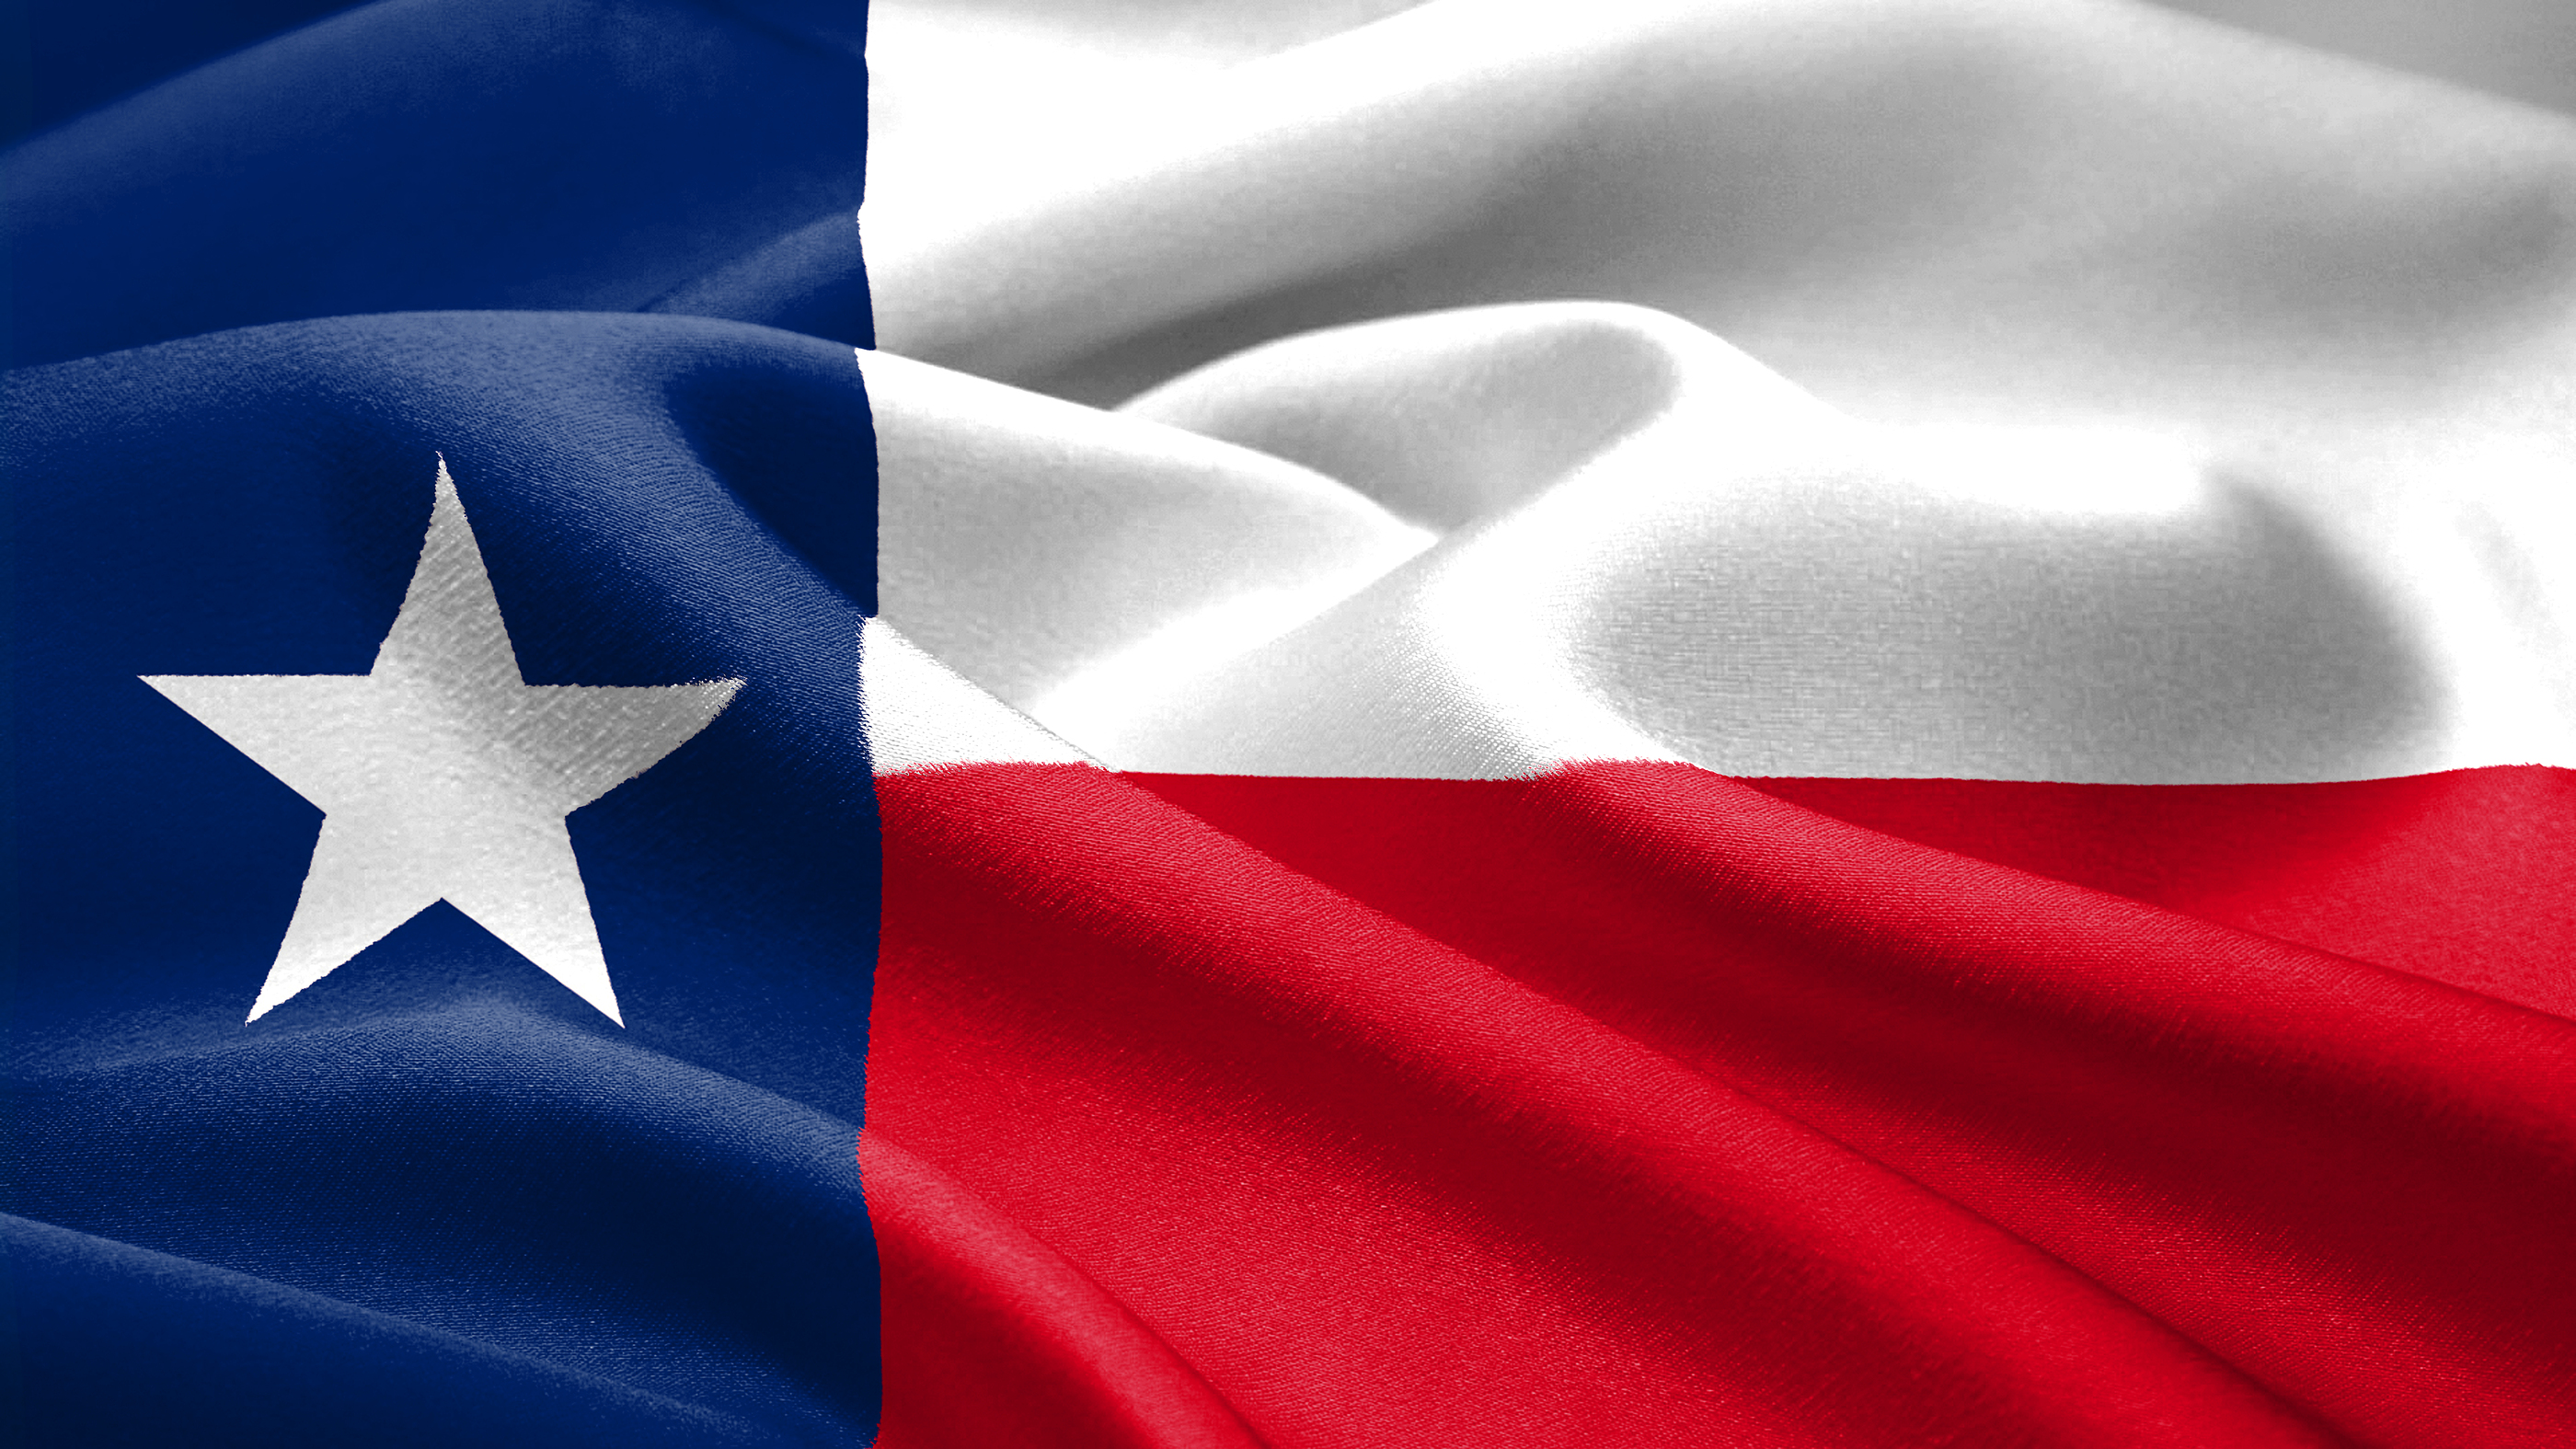 Official Retirement Ceremony of the Texas Flag